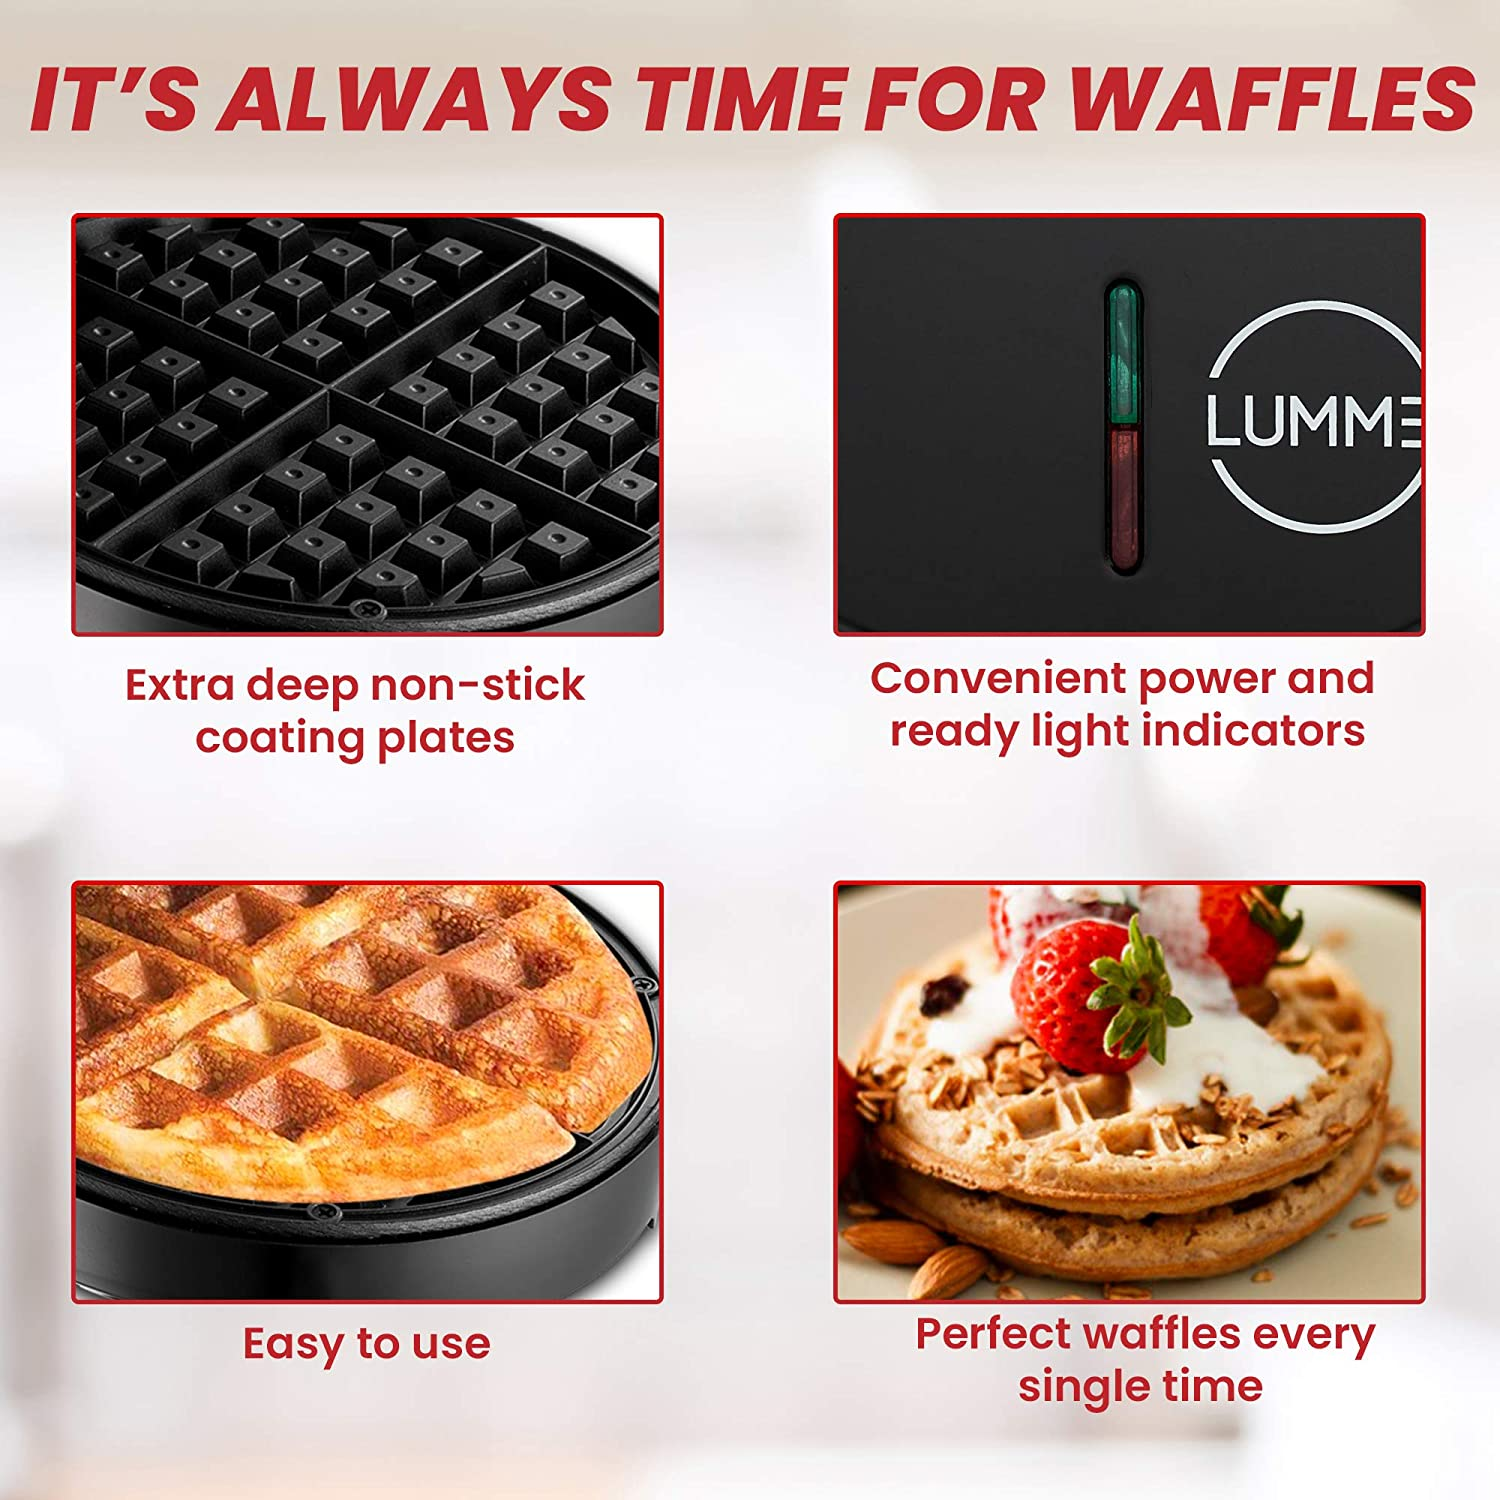 Lunch Hash browns other on the go Breakfast or Snack Lumme Waffle Maker Belgian Waffle Maker Machine Belgian Waffle Maker for Individual Waffles Paninis